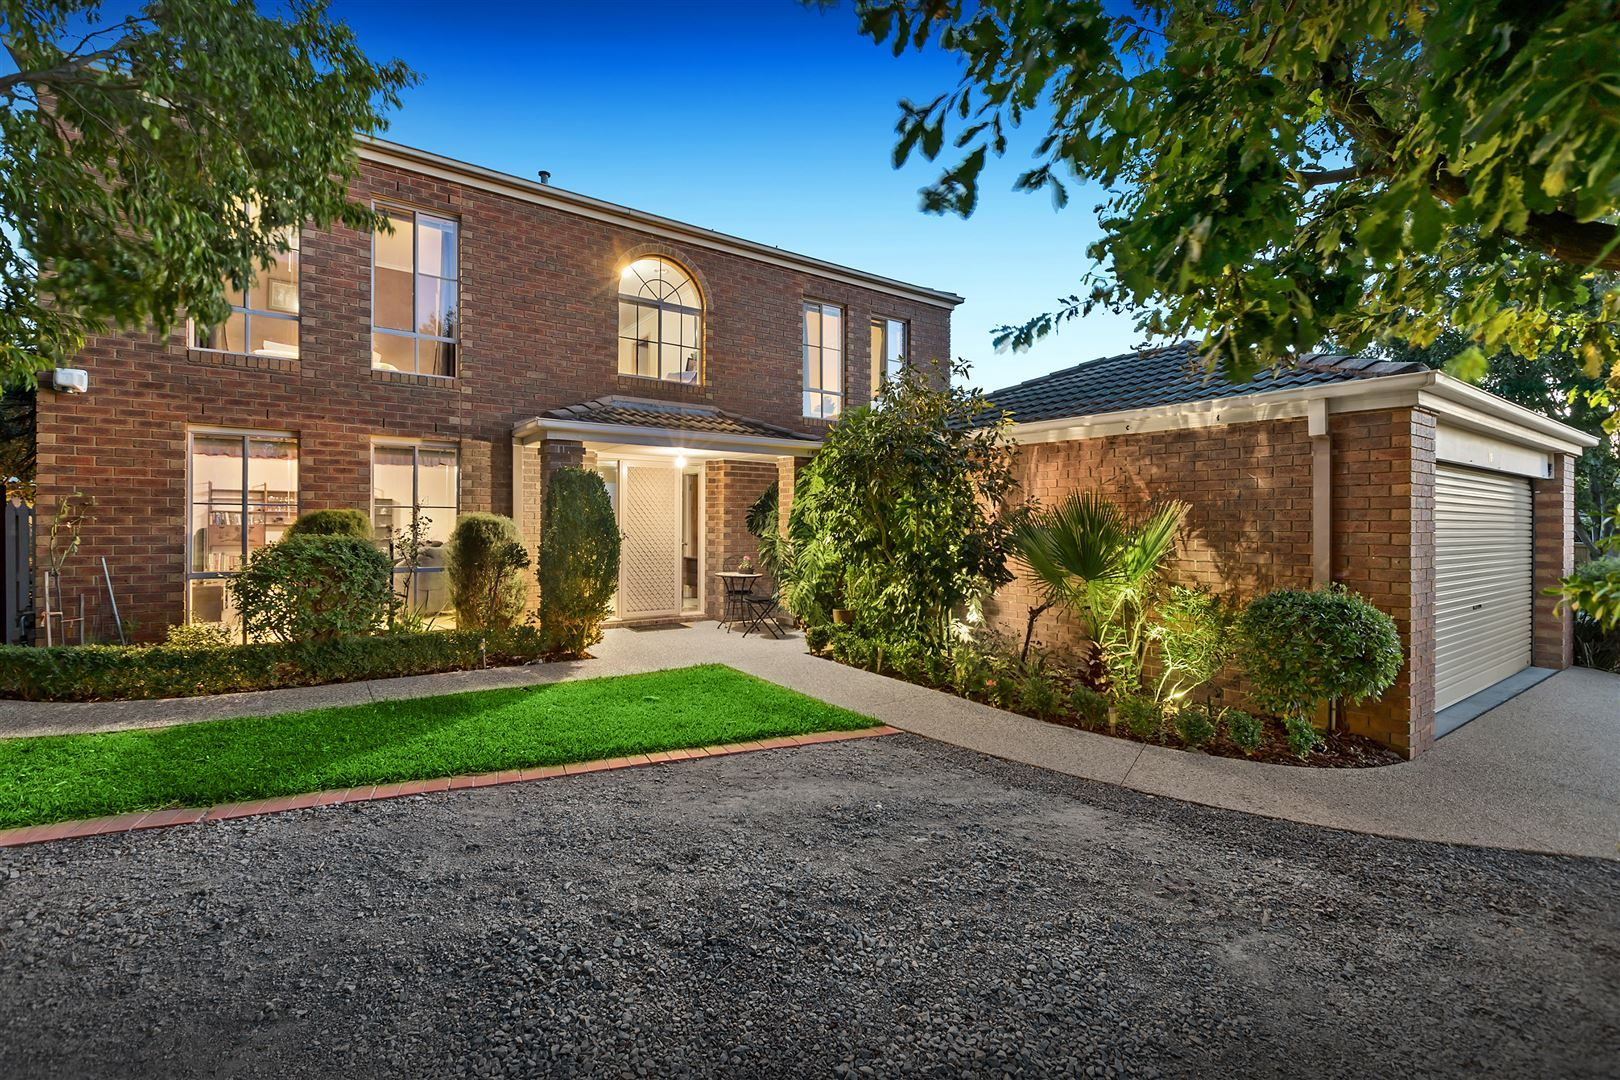 19 Airedale Way, Rowville VIC 3178, Image 0